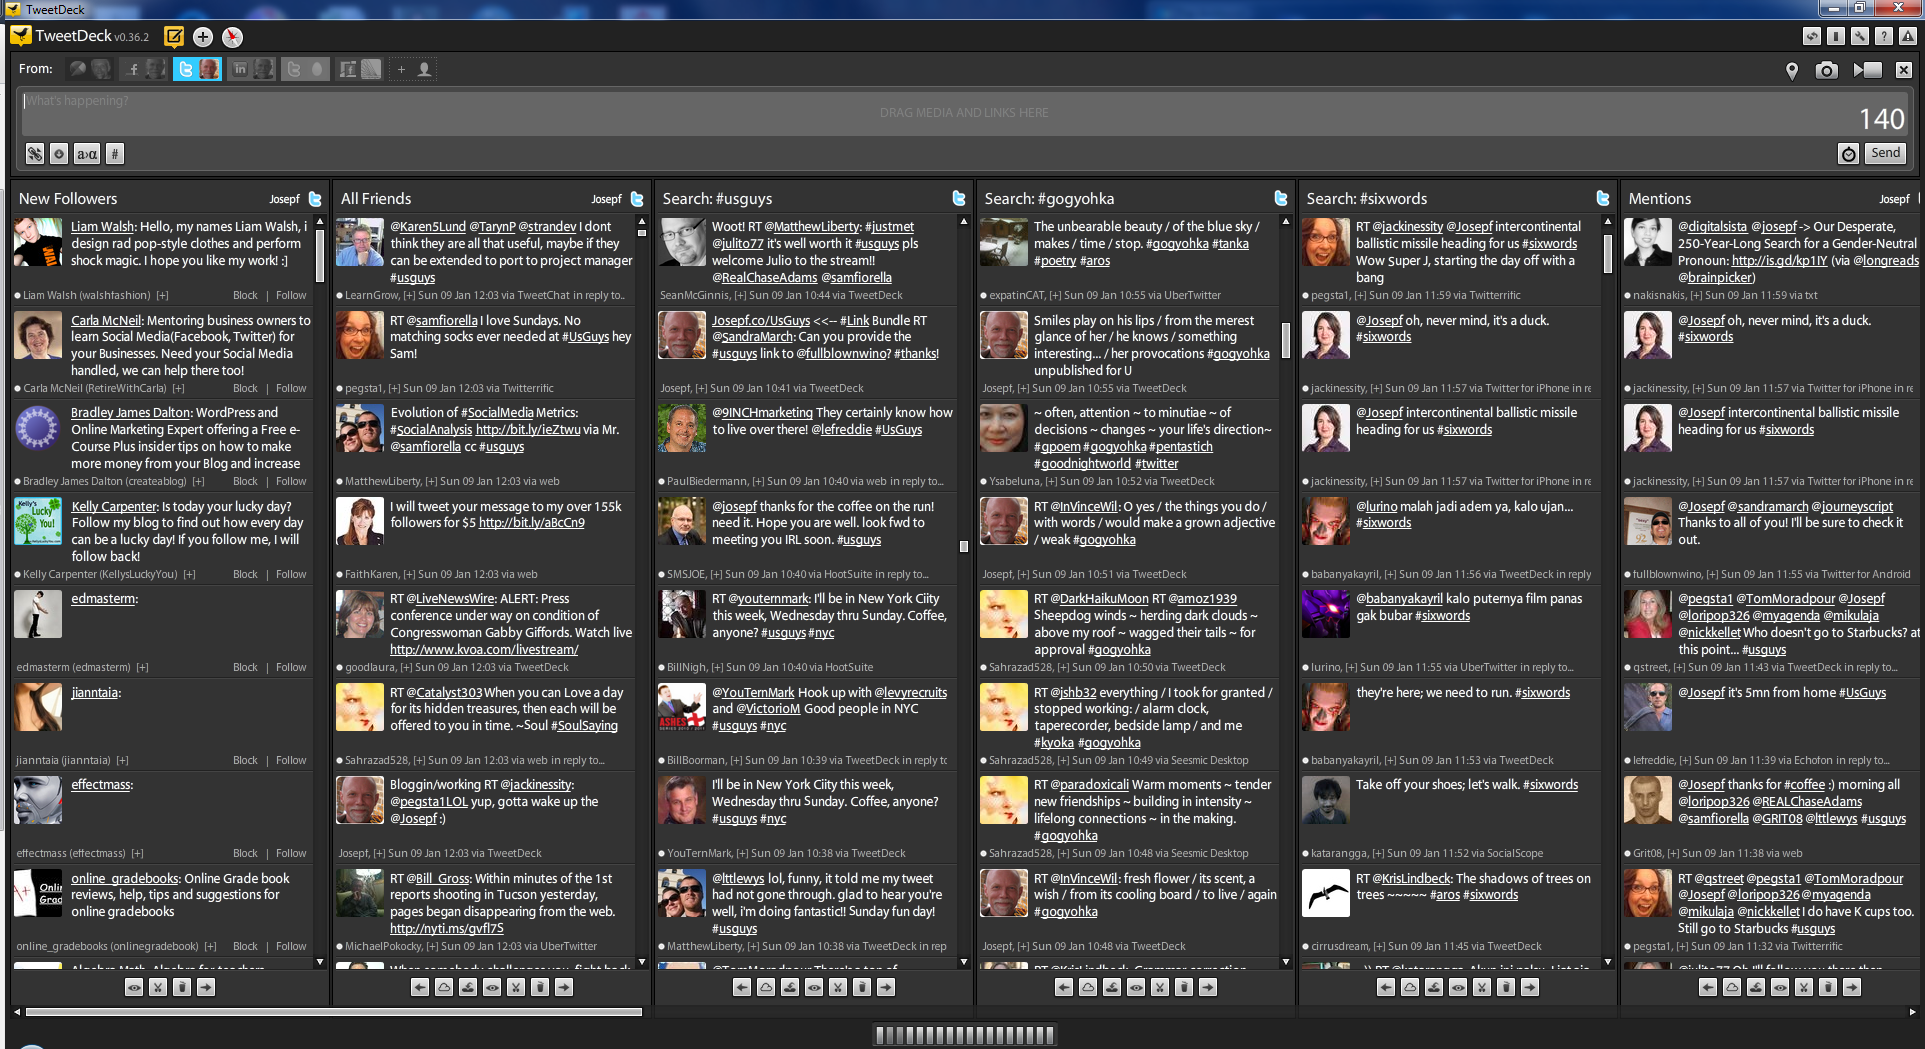 Tweetdeck-view